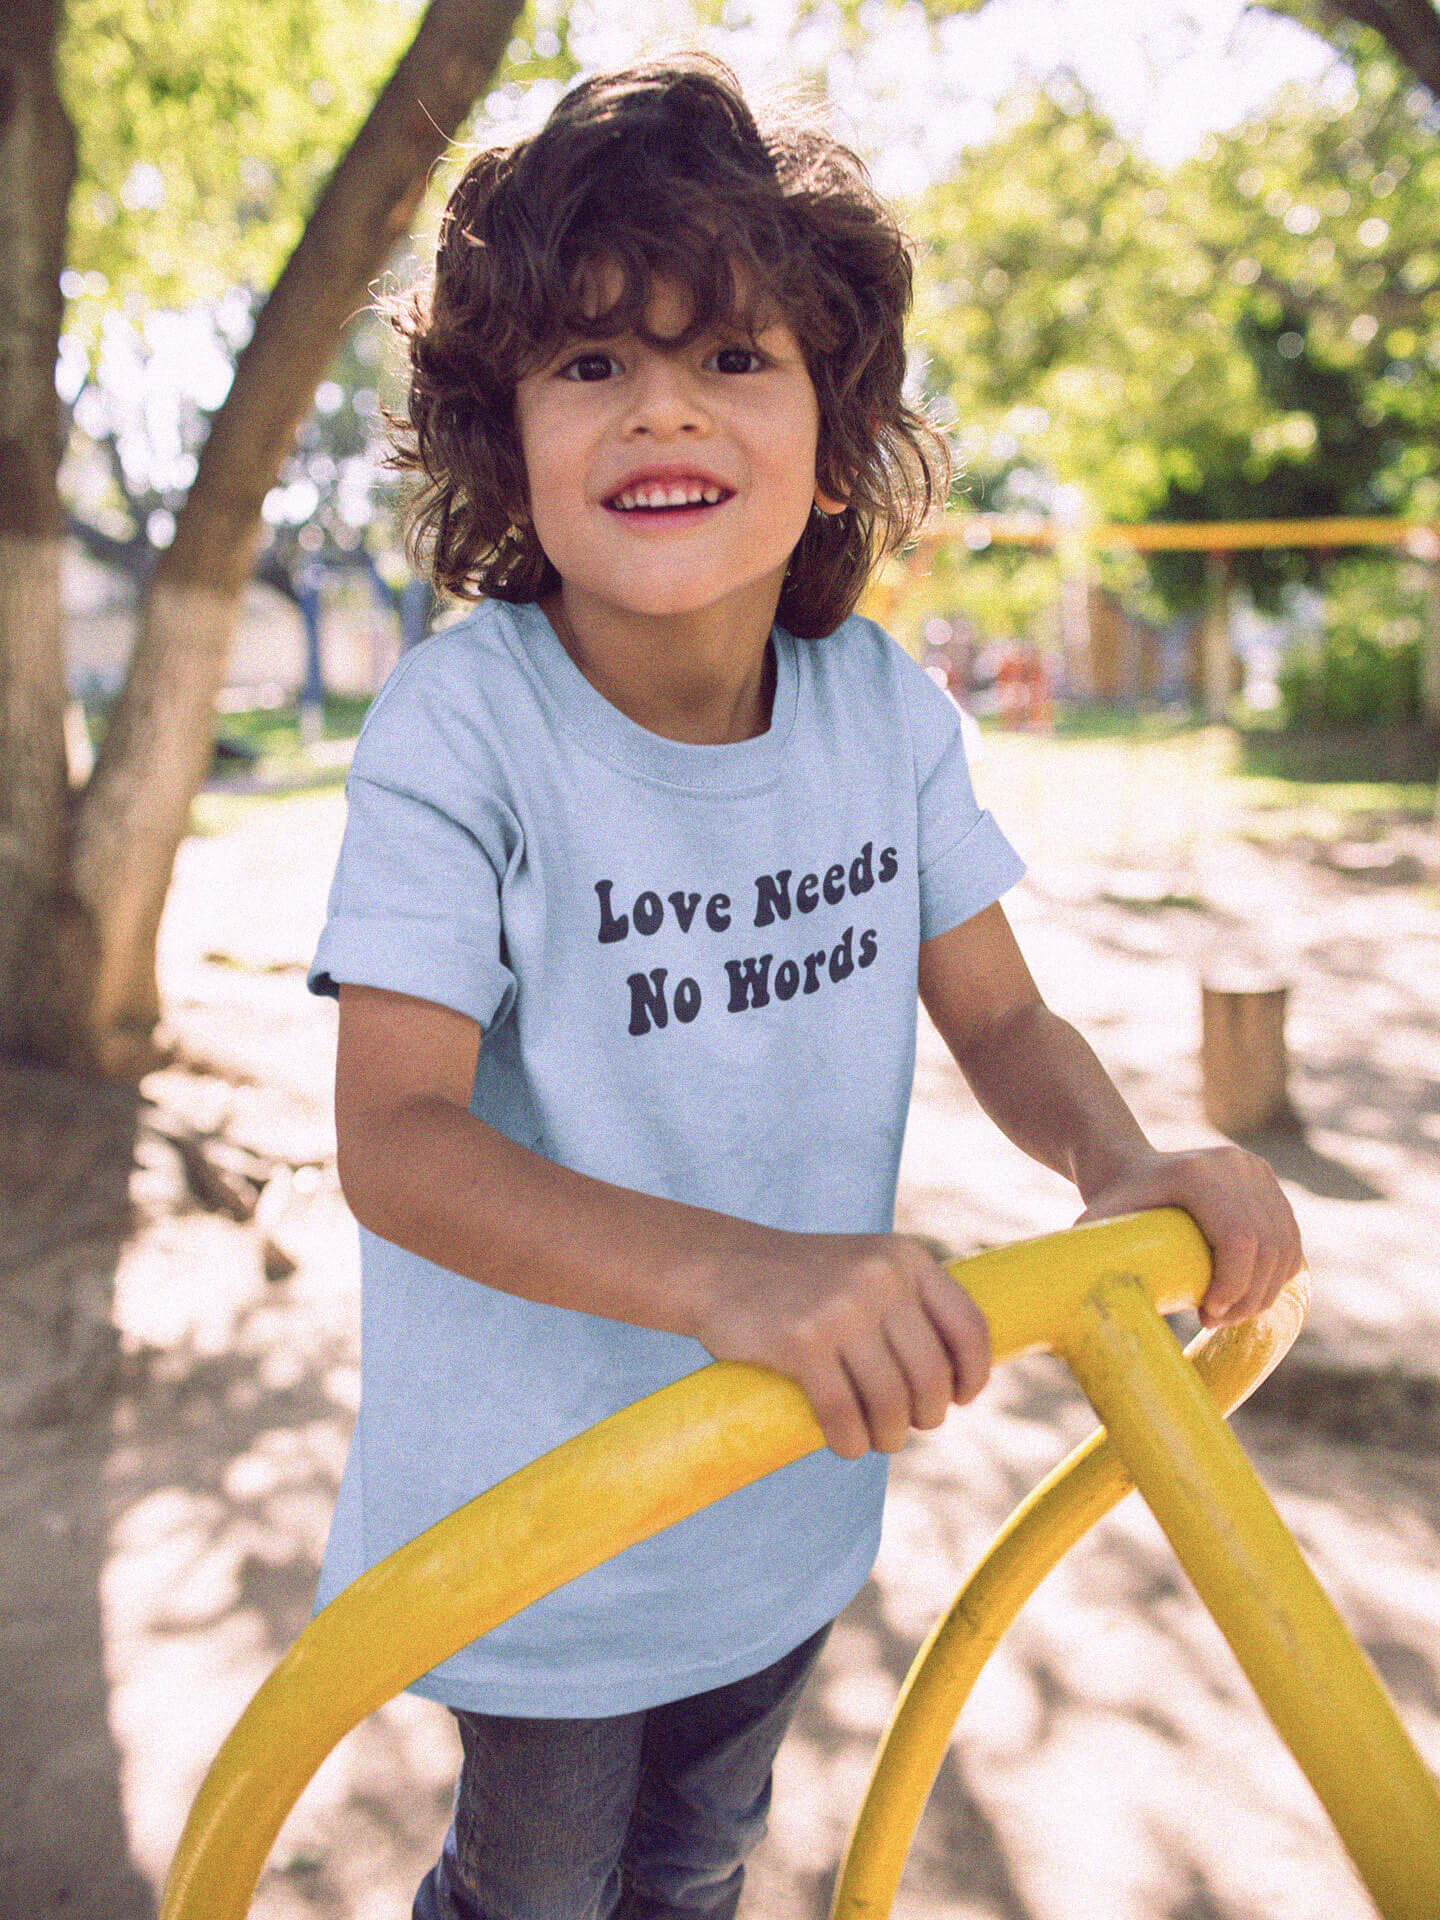 kid smiling wearing love needs no words t-shirt on playground